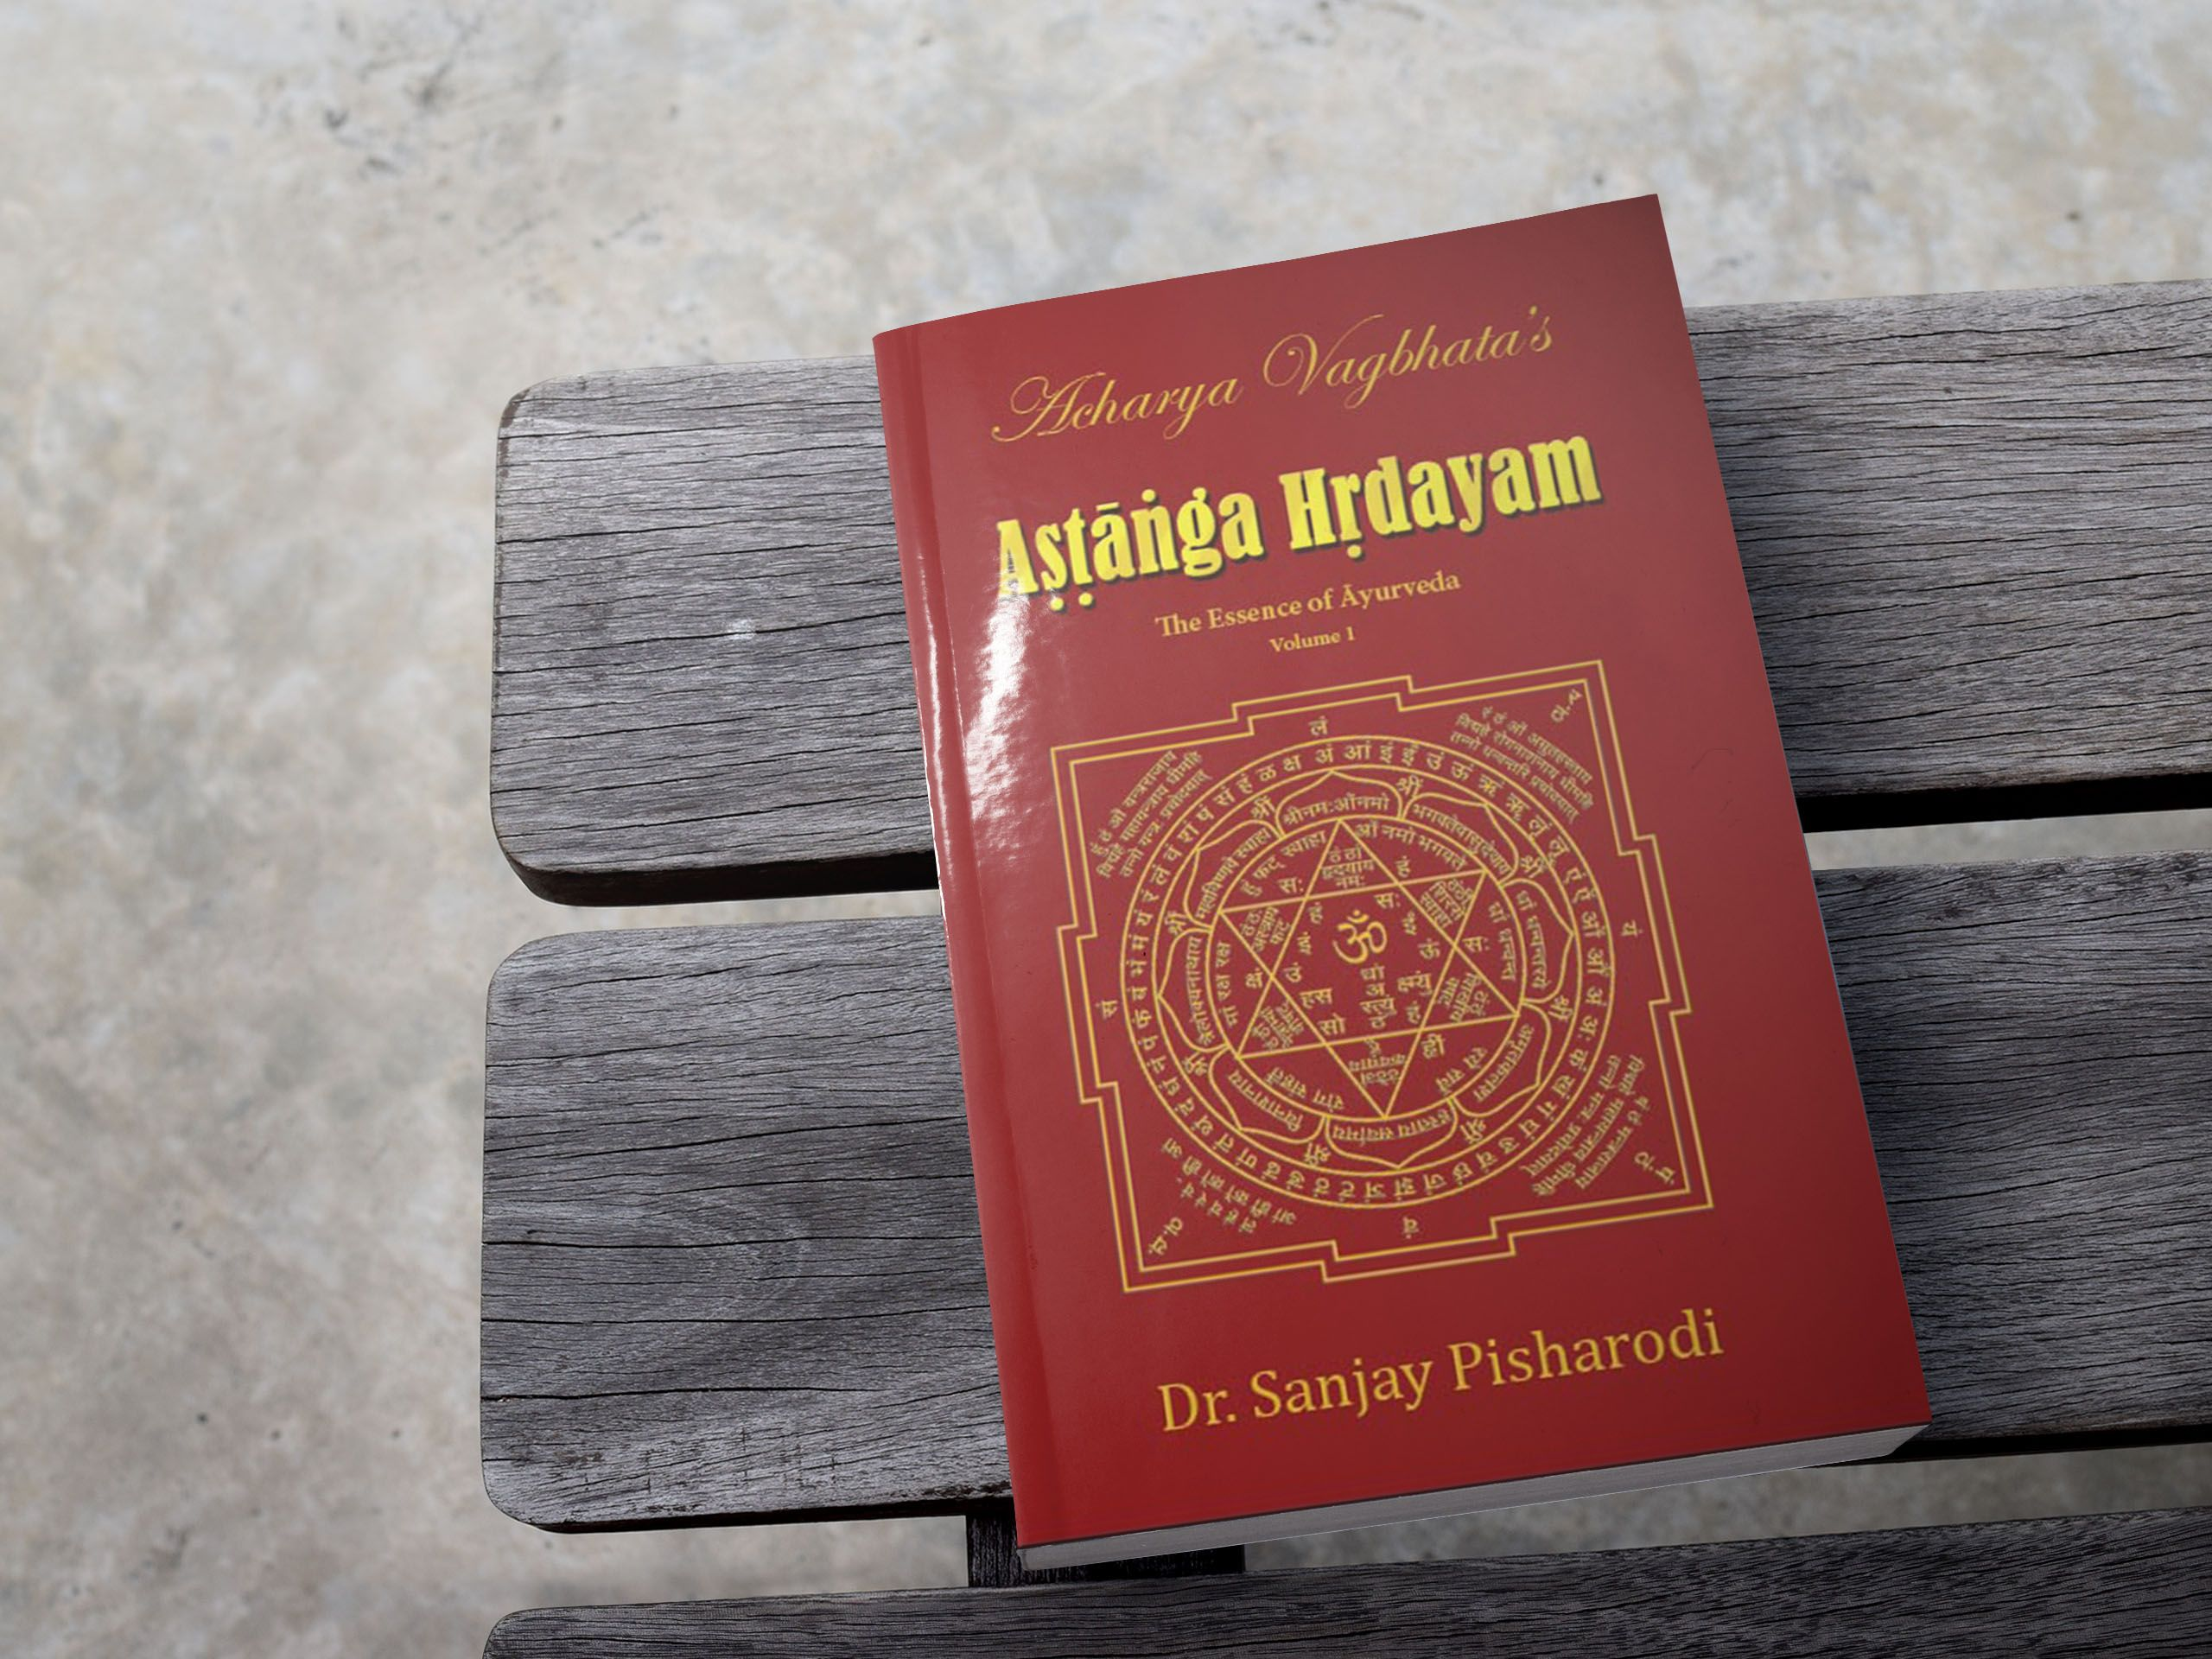 Free ebook introduction to ashtanga hridayam the best guide on how free ebook introduction to ashtanga hridayam the best guide on how to study the ancient classical ayurveda text get a chance to win a copy of the newly fandeluxe Image collections